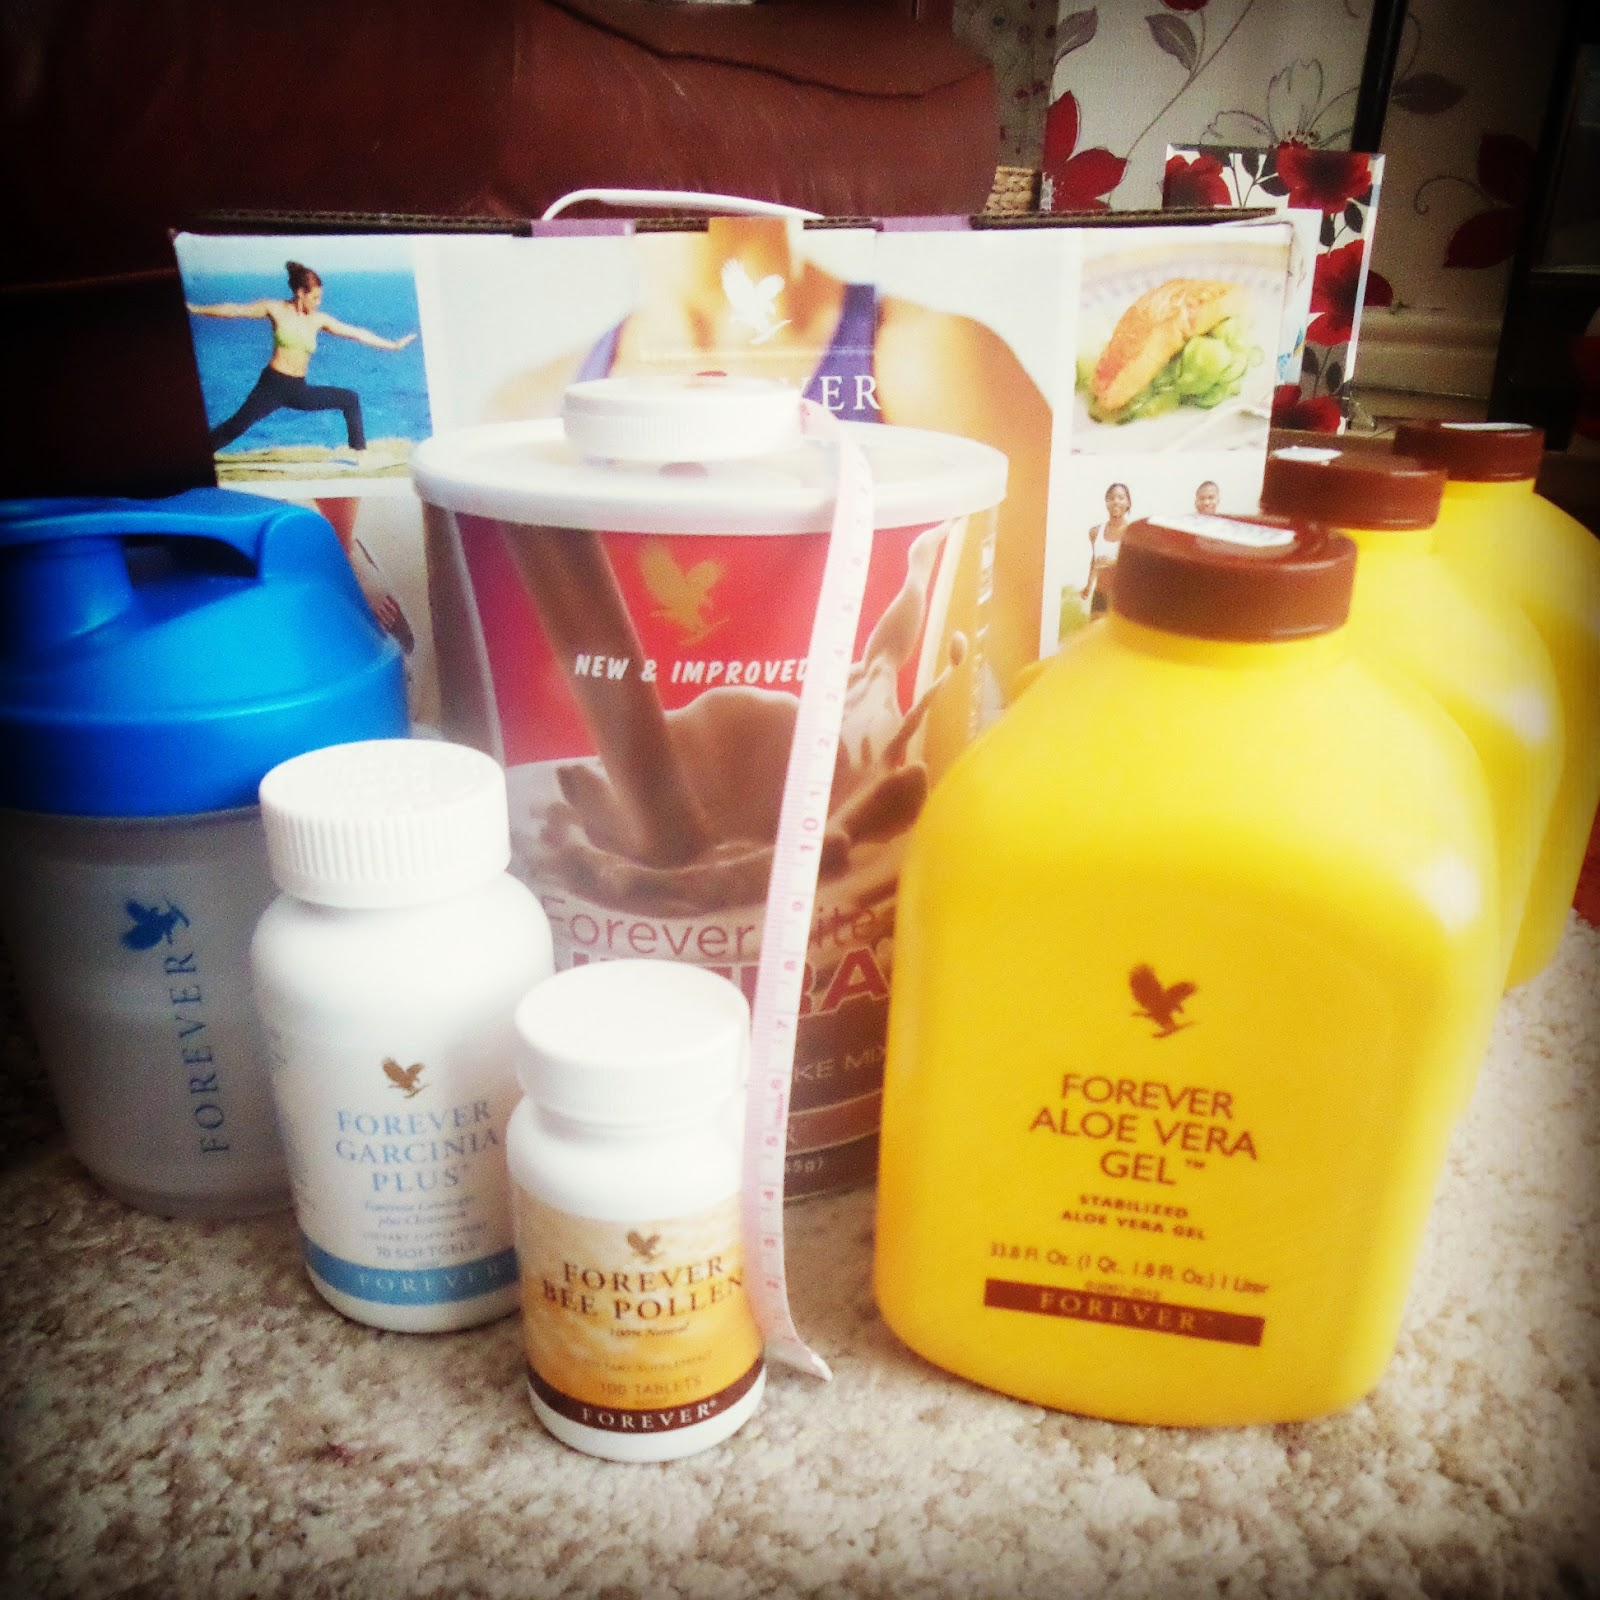 The Clean 9 Kit, ALOE VERA GEL